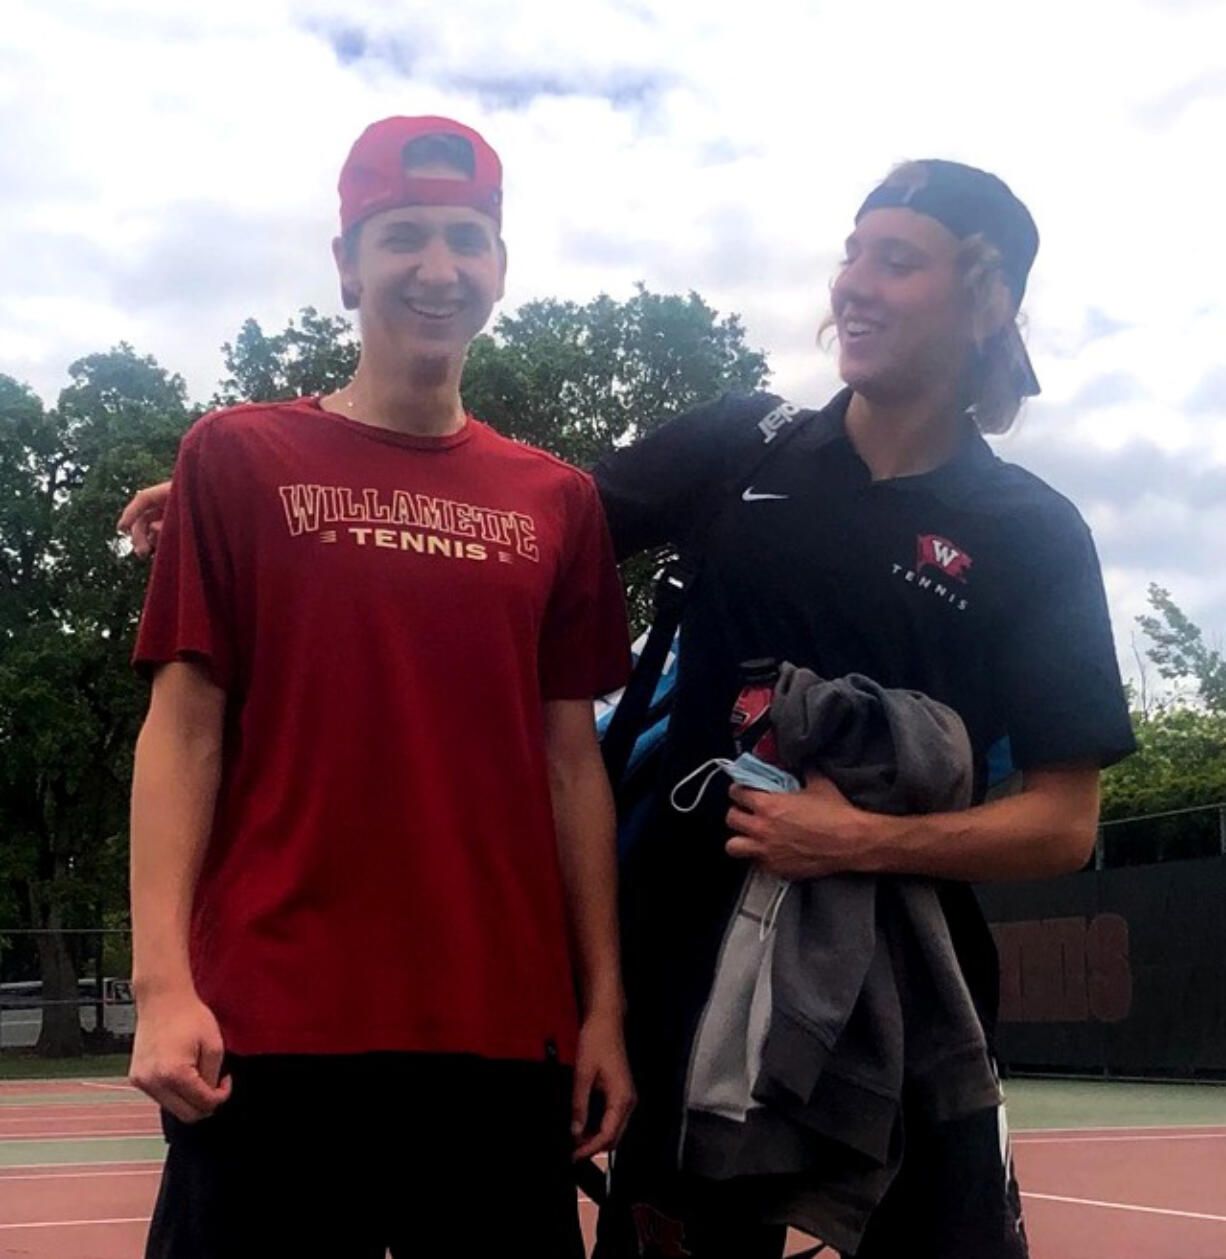 Willamette junior Andrew Kabacy, and Whitworth freshman Jonathan Hutley, former teammates at Skyview High School, squared off at Willamette in Salem, Ore., on Sunday, May 2, 2021, for the first time as college opponents. Kabacy won in straight sets.